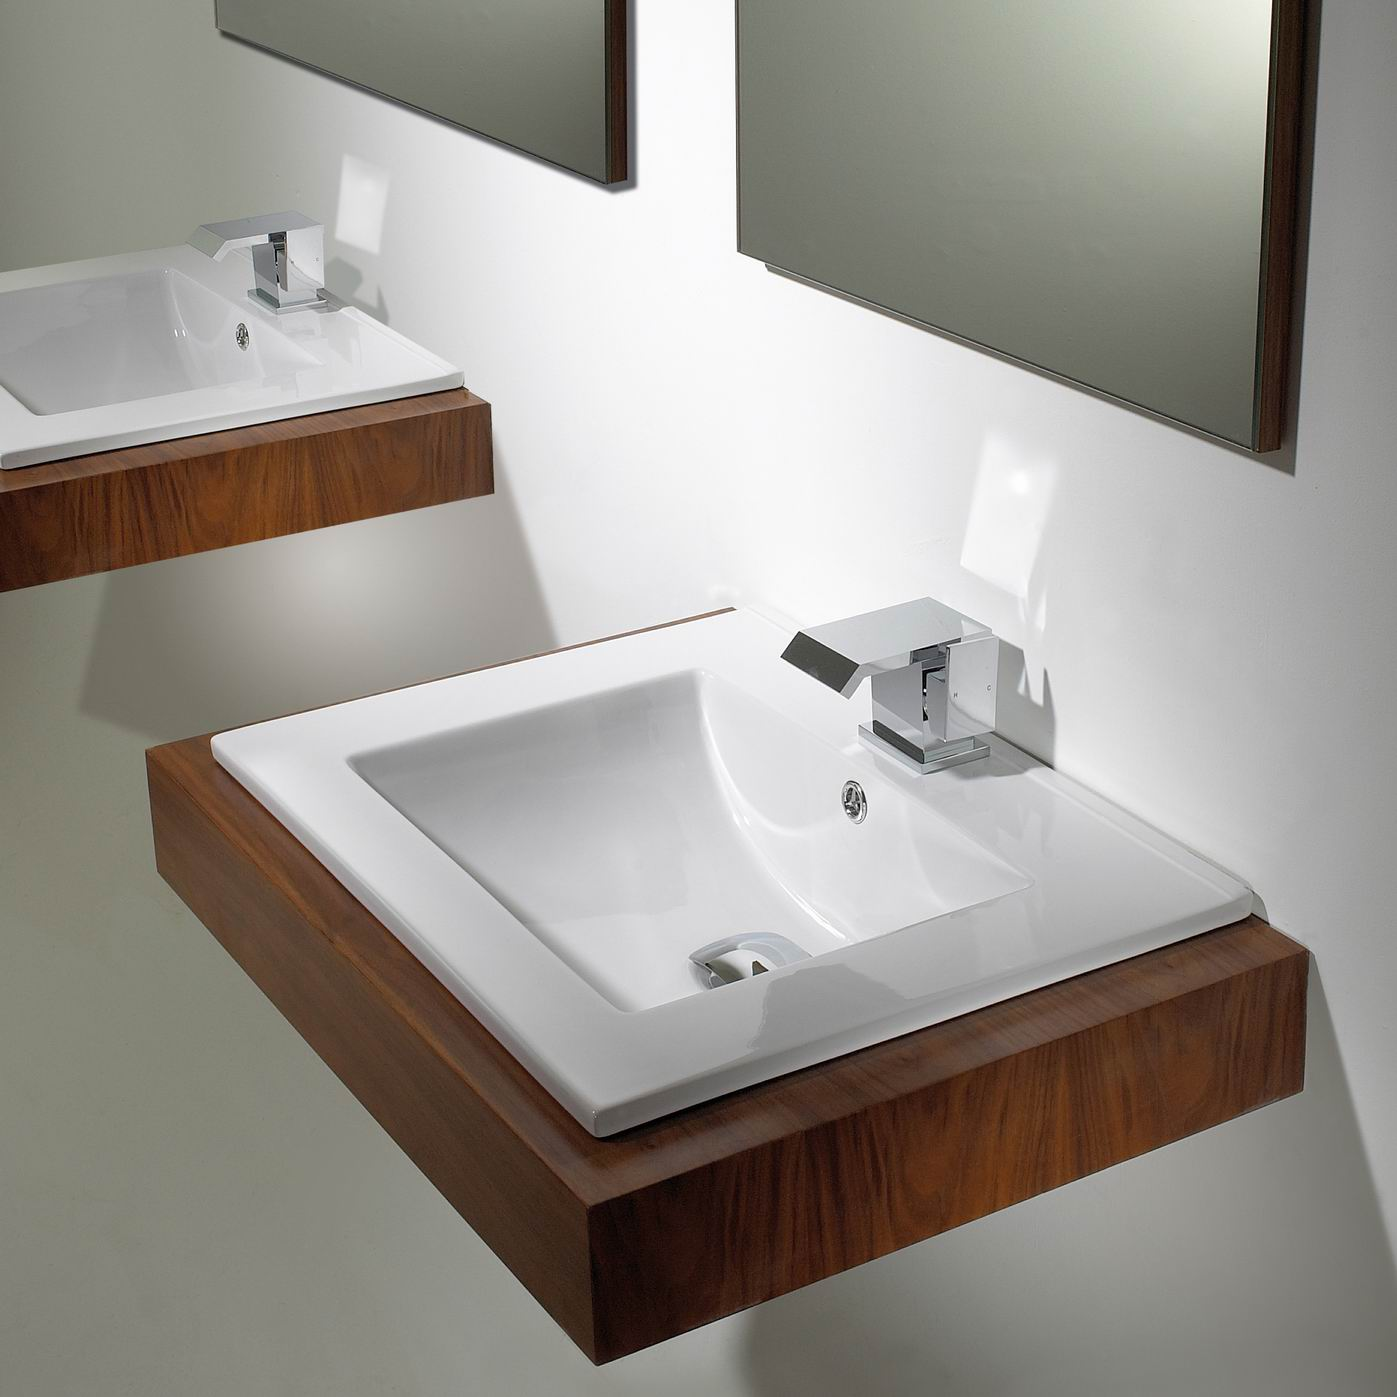 wash basins with Bathroom Basins on On Top Bowl SHBA40 furthermore 5080247 furthermore Malachite Green Tiles Slabs additionally Porcelanosa Bathrooms furthermore Mid Grey Flamed 600 X 600 X 20 Flamed Granite Only 2499 Per M2 Inc Vat 875 P.